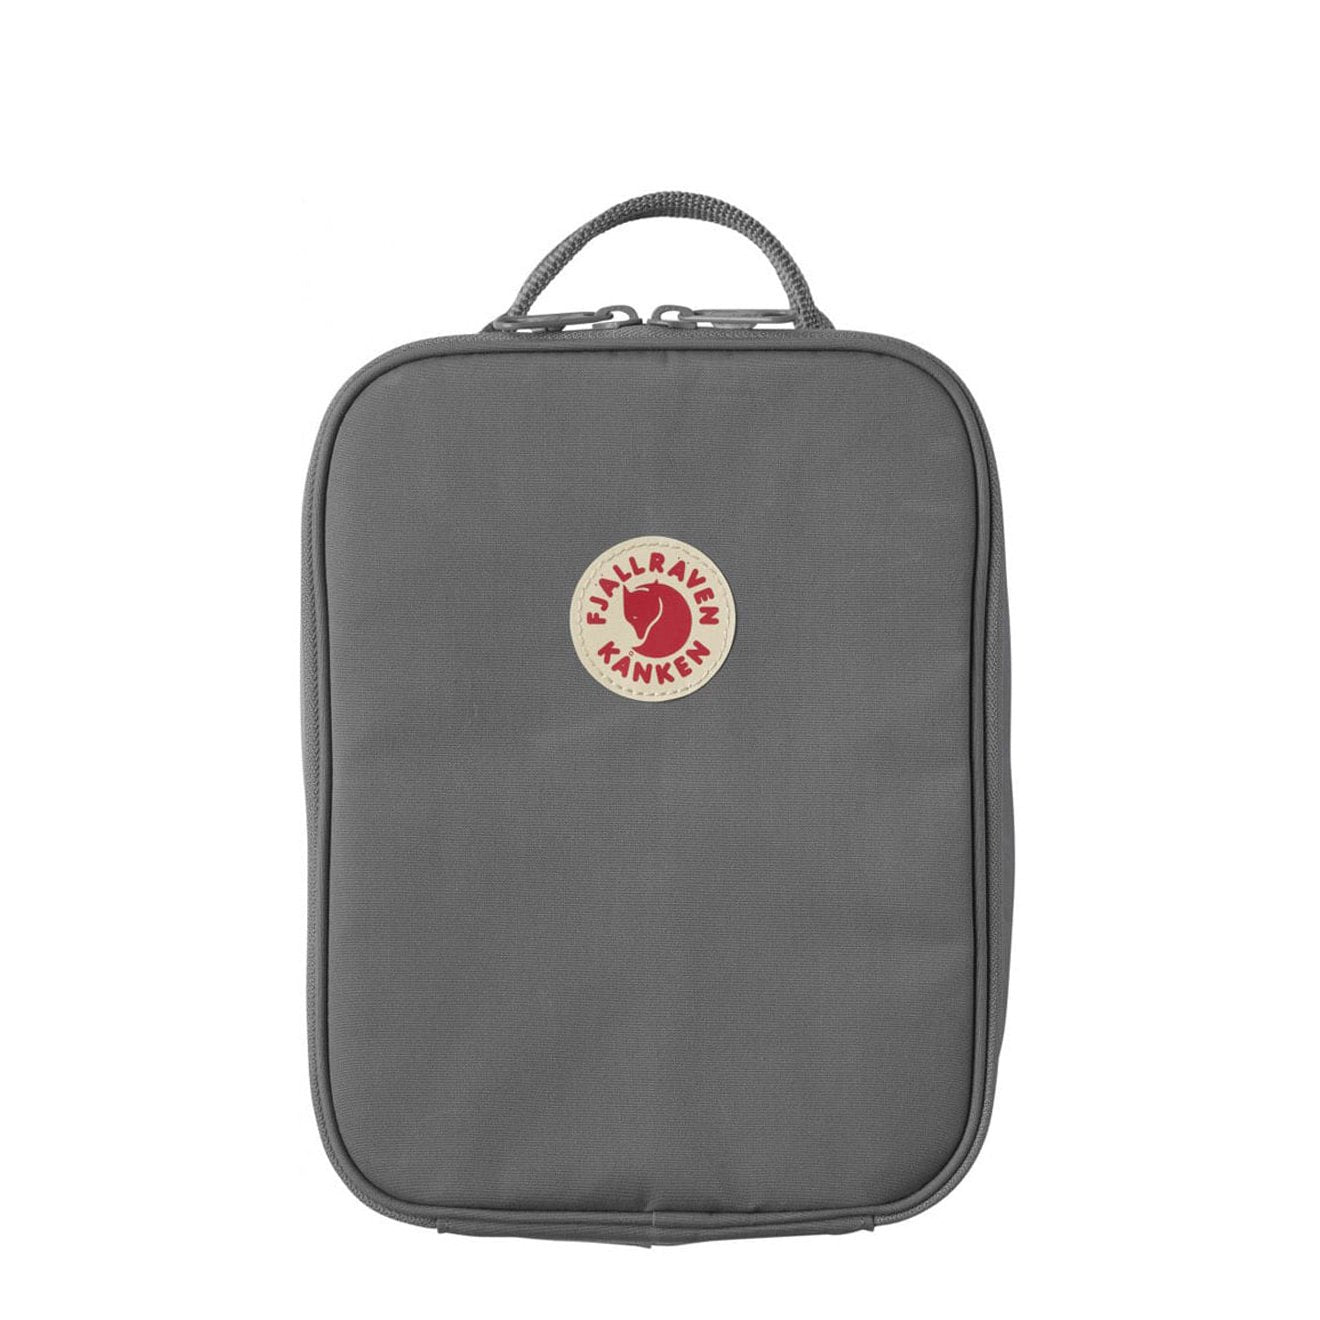 Fjallraven Kanken Mini Cooler Lunch Bag Super Grey